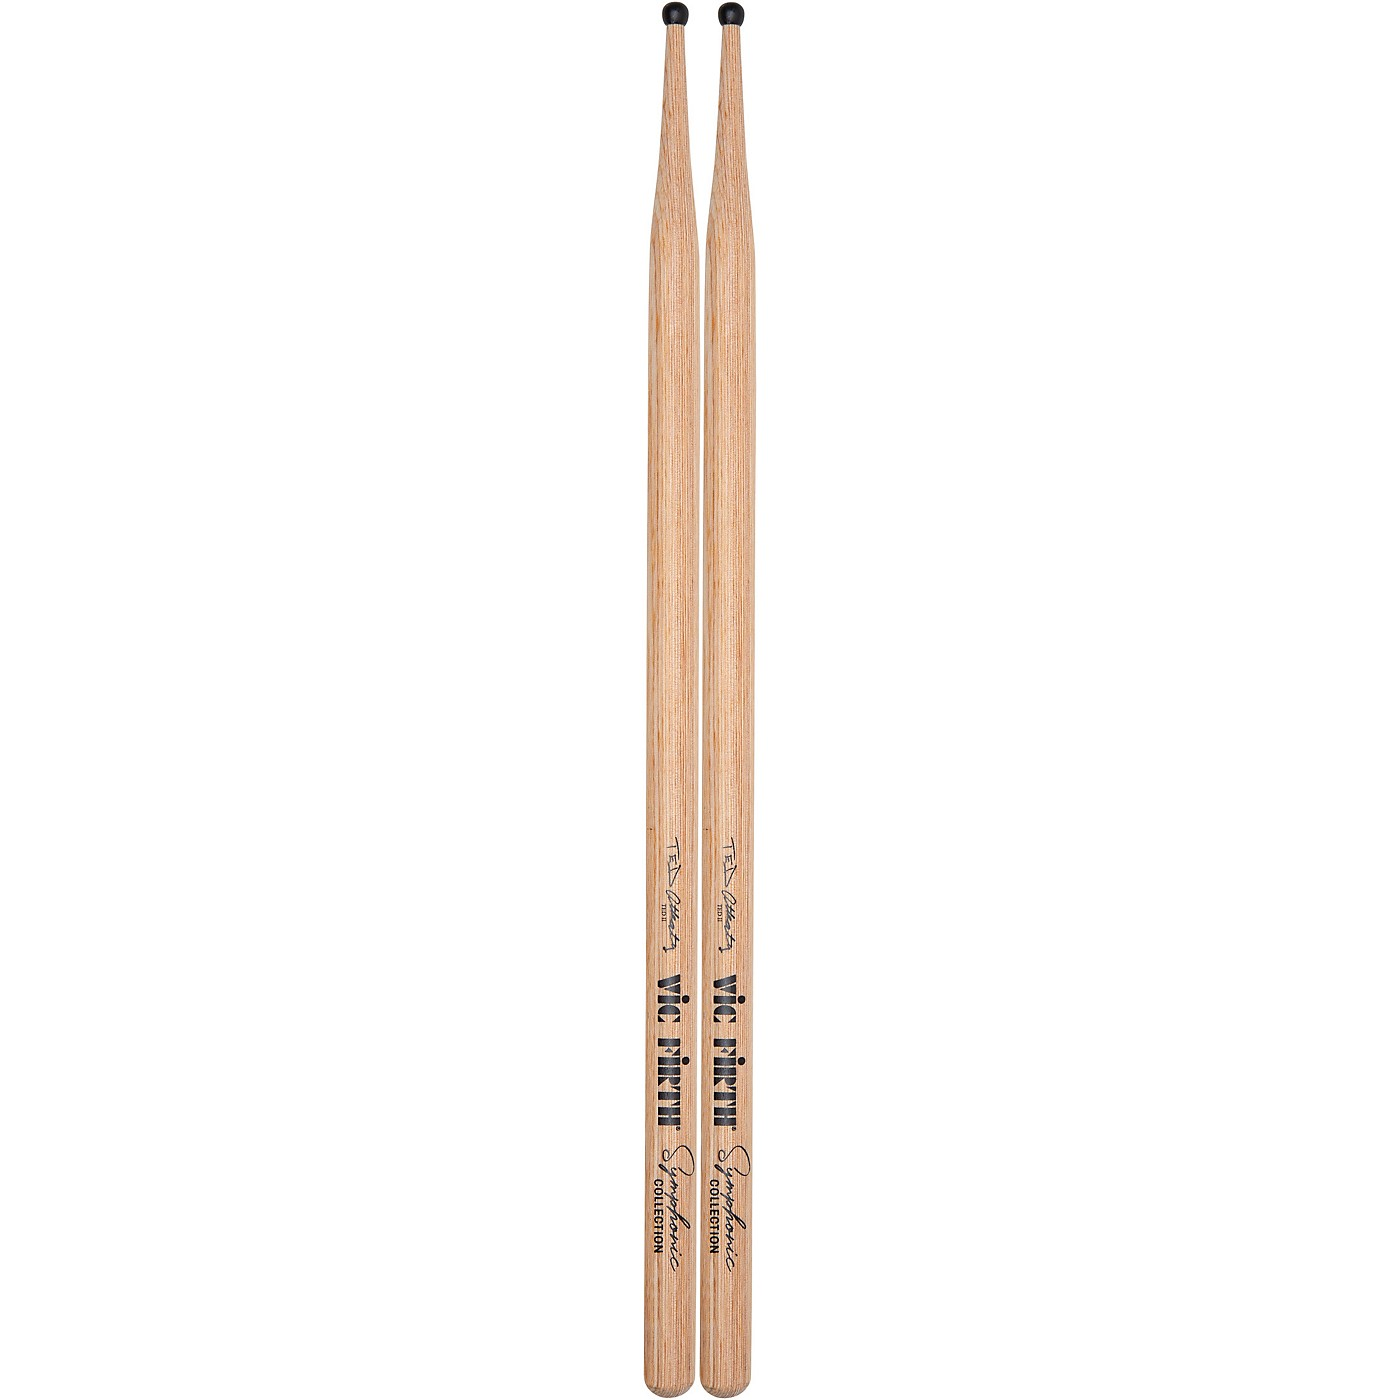 Vic Firth Symphonic Collection Laminated Birch Ted Atkatz Signature Drumstick thumbnail